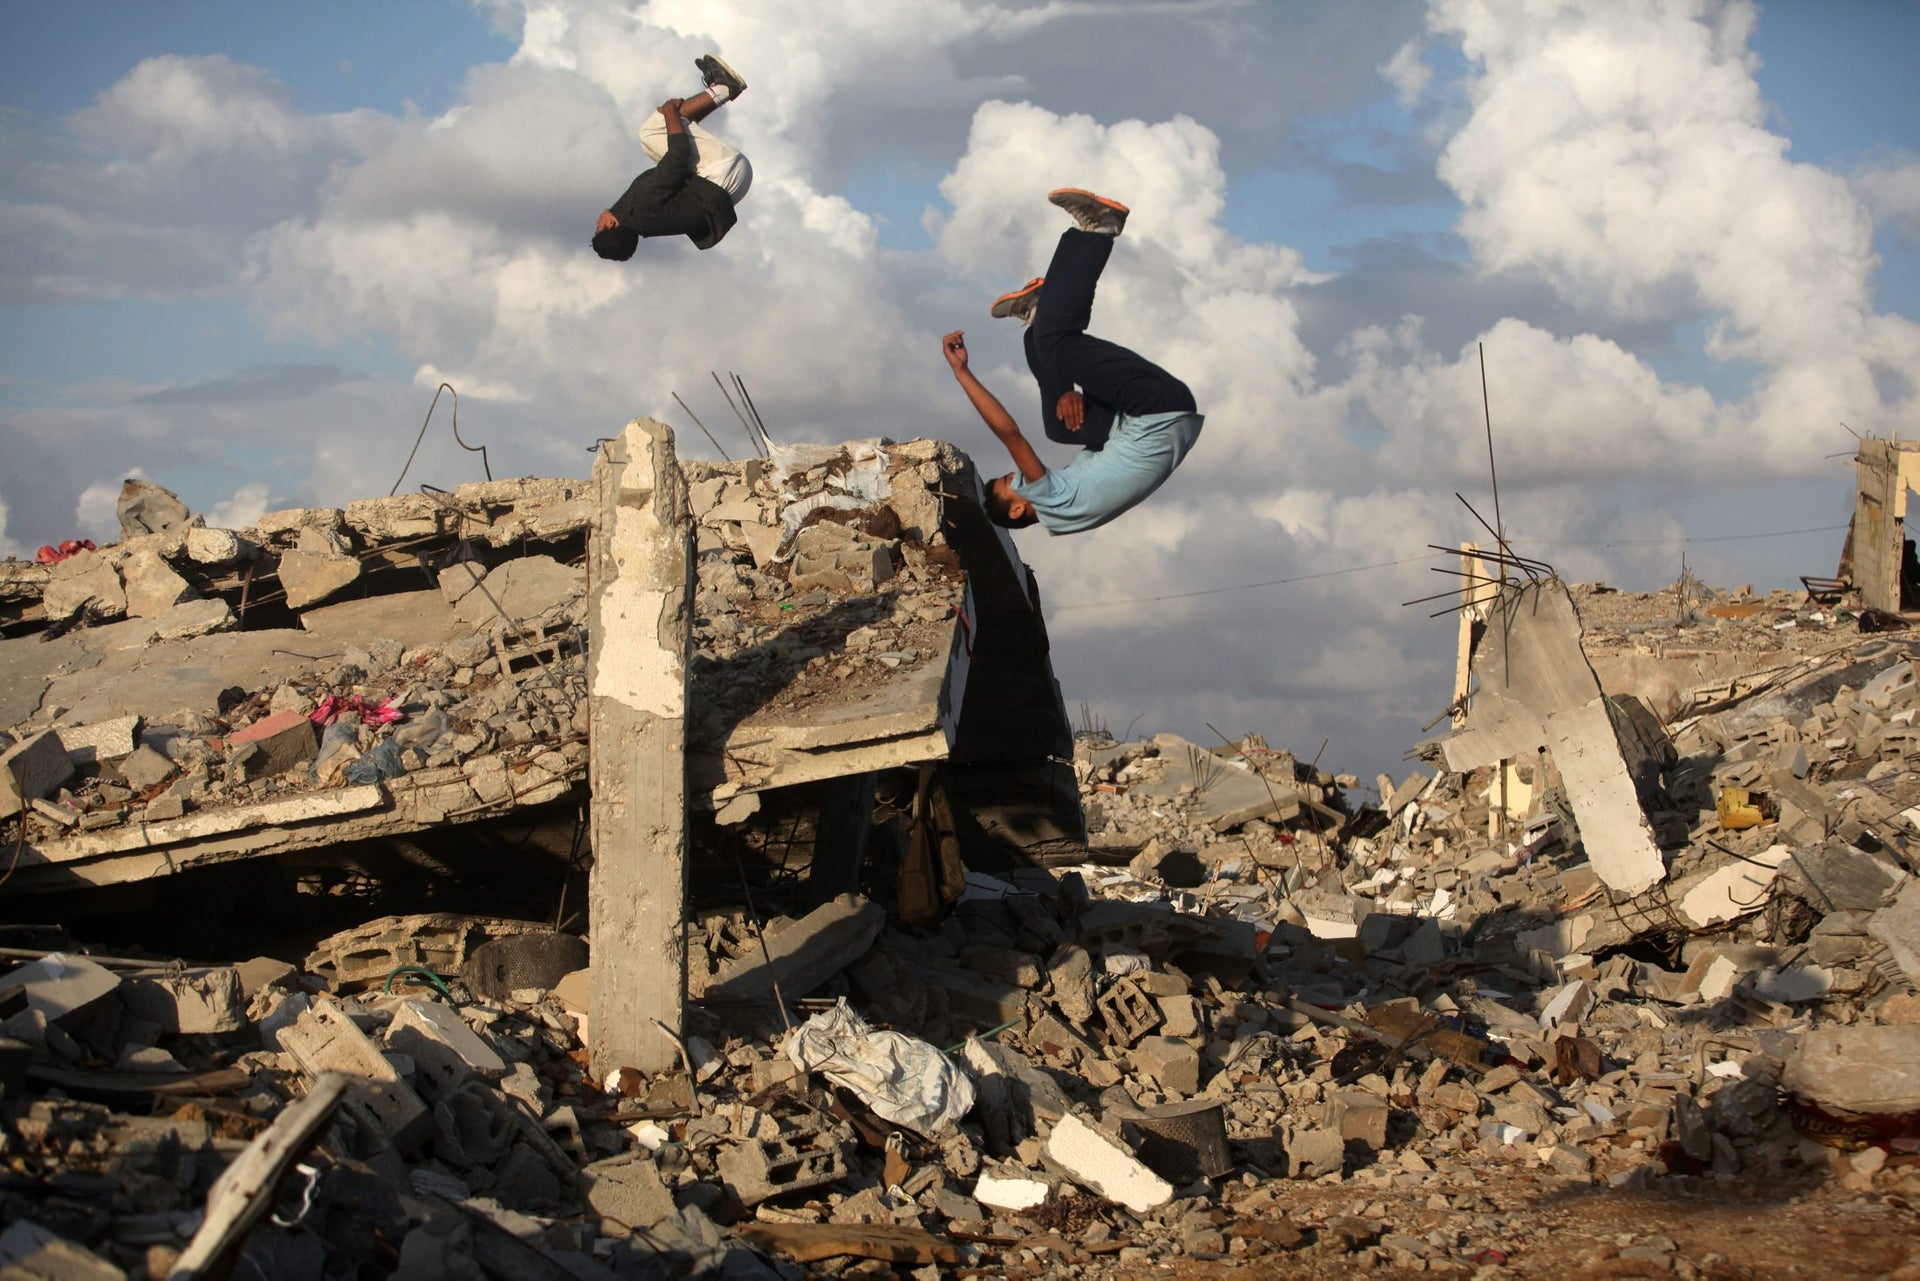 Palestinian youths practice their Parkour skills over the ruins of houses, which witnesses said were destroyed during a seven-week Israeli offensive, in Khan Younis city in Gaza Strip, 2014.